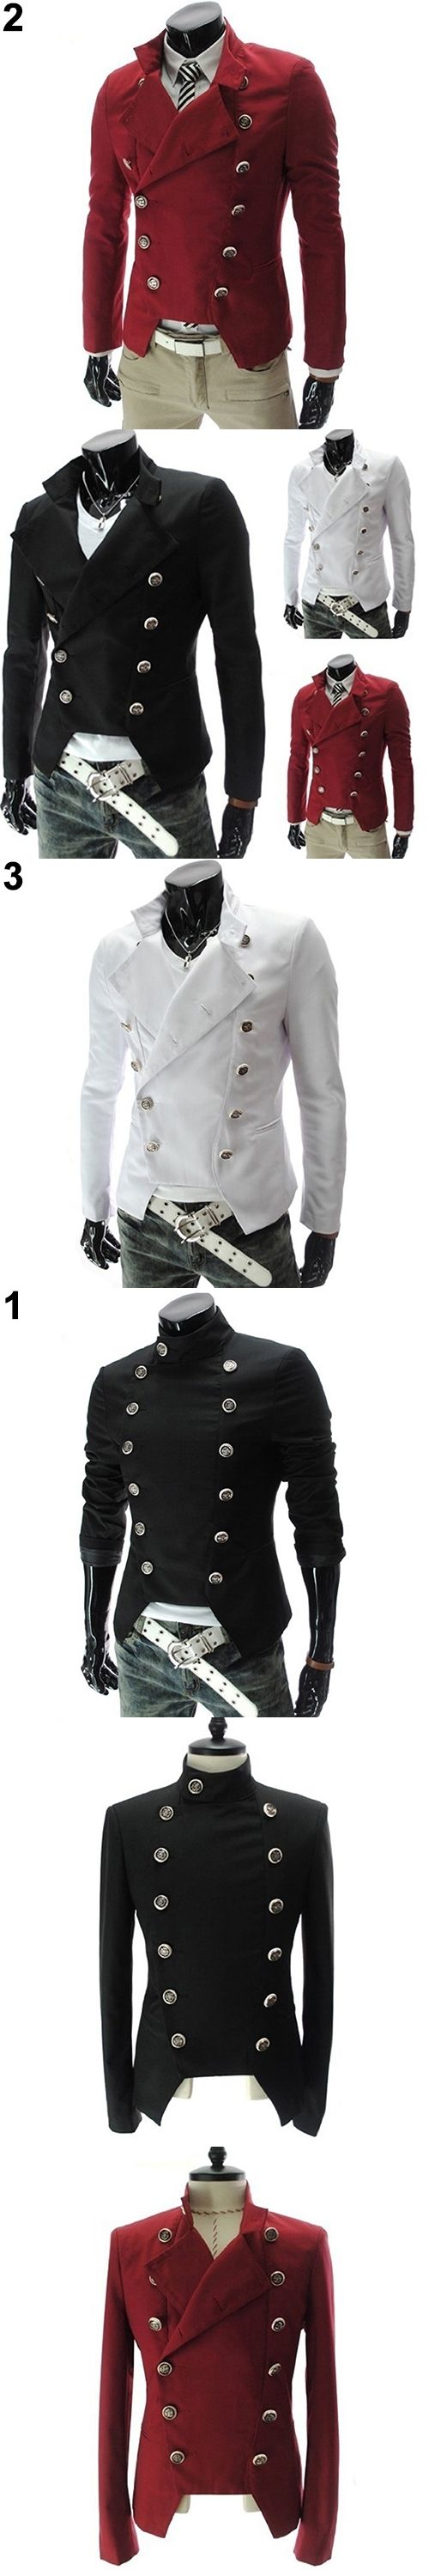 New Arrival Men's Fashion European Style Double-breasted Casual Lapel Slim Suit Blazer Coat